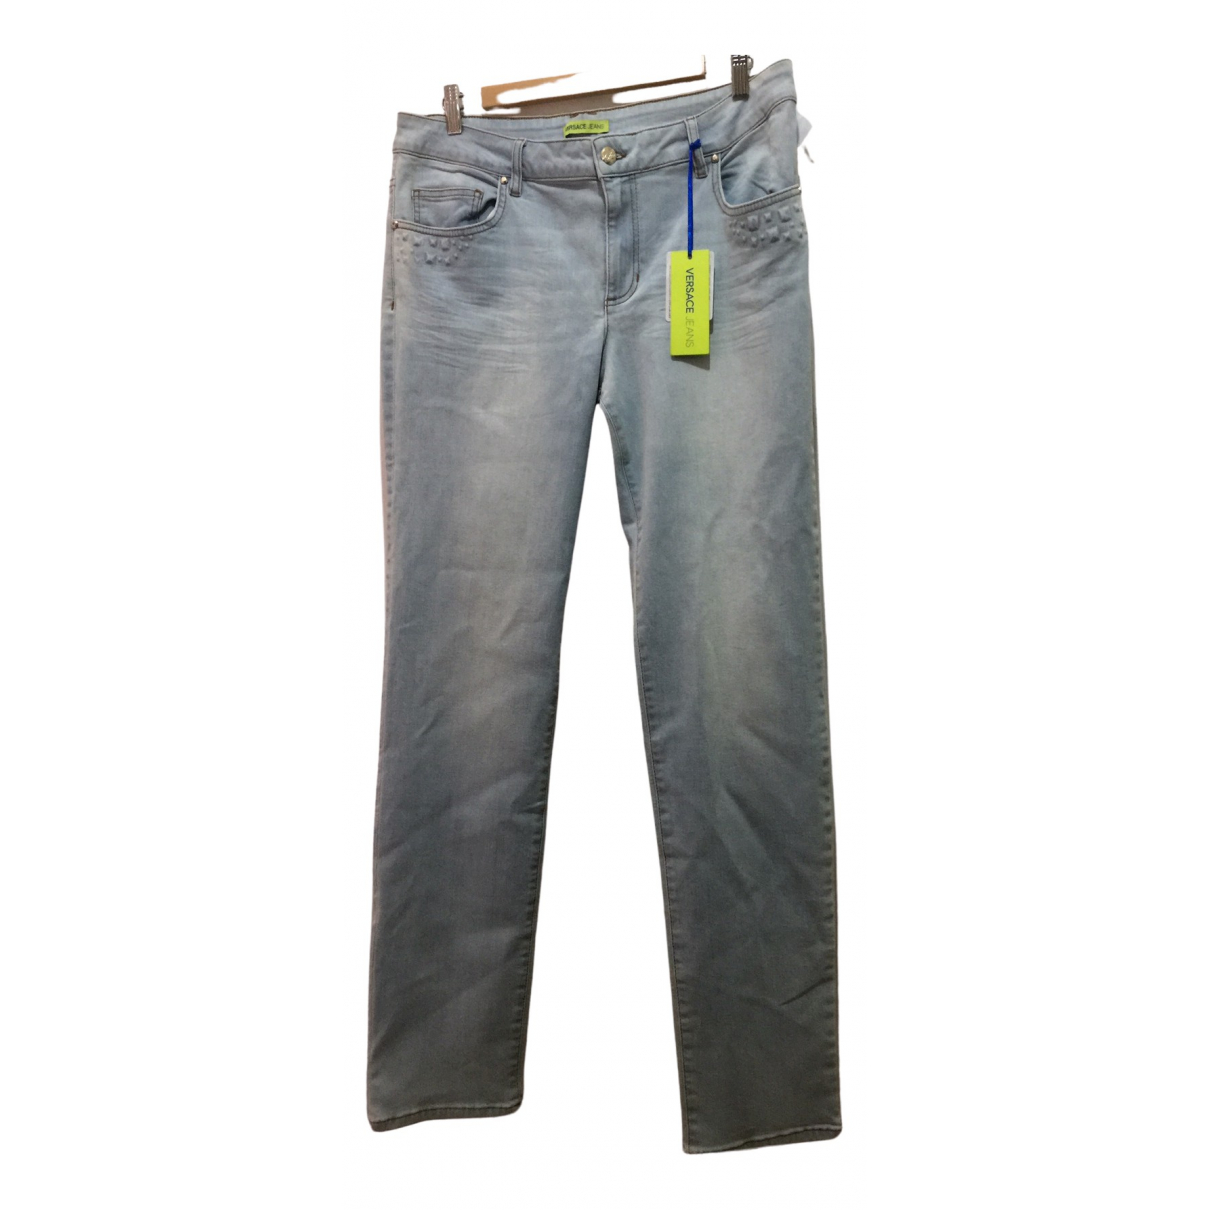 Versace Jeans \N Blue Cotton - elasthane Jeans for Women 32 US